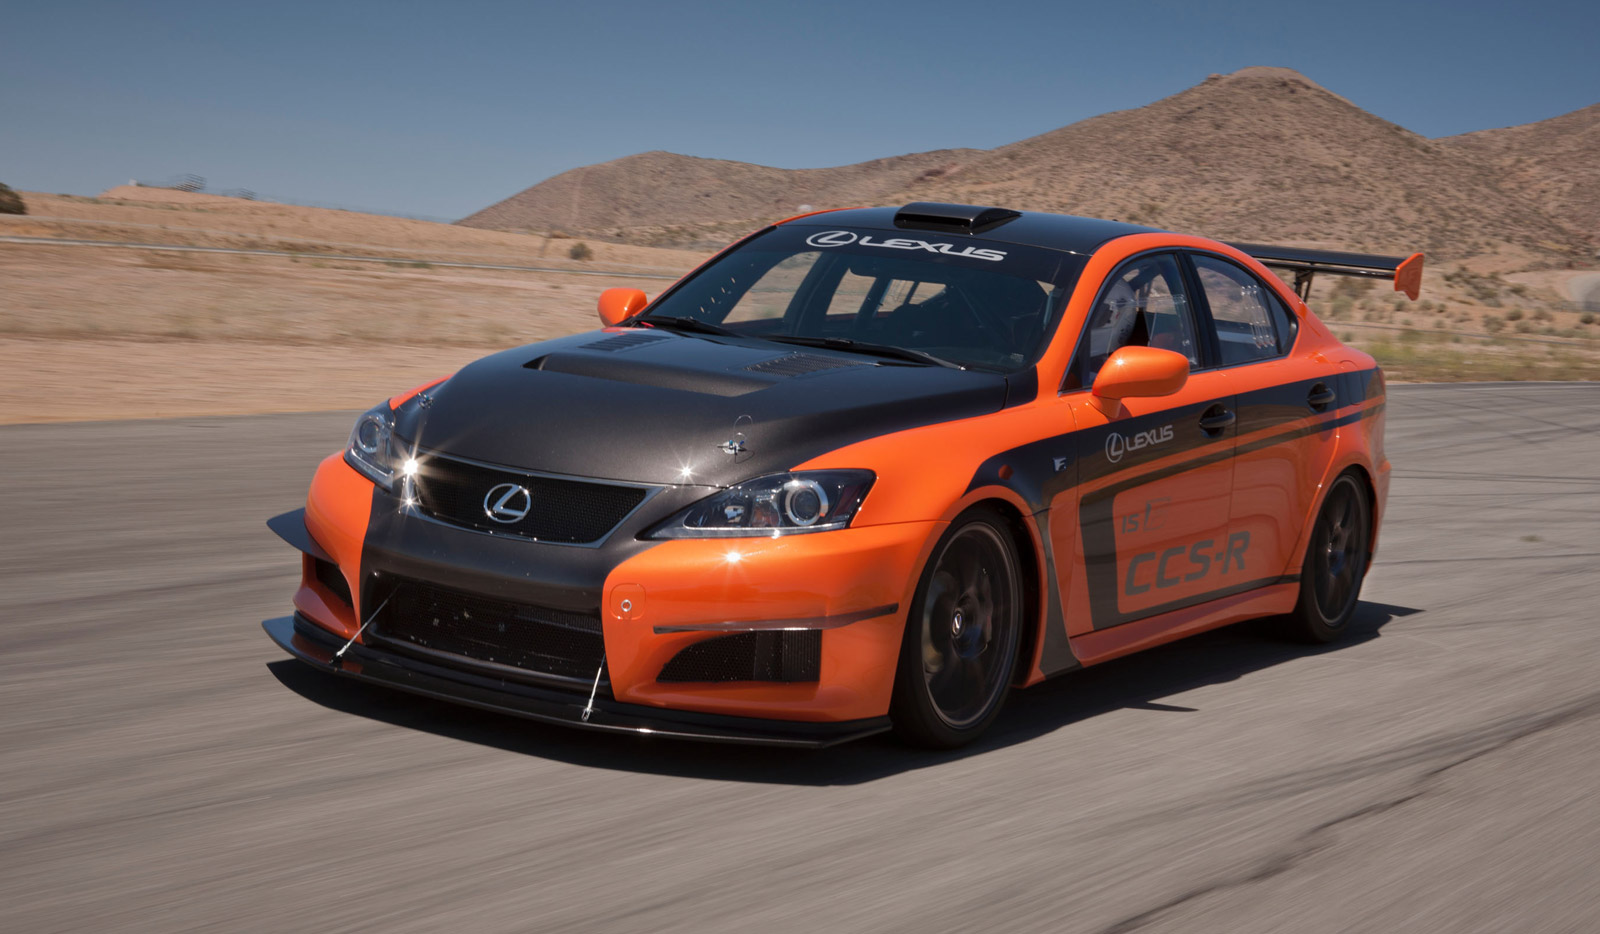 Lexus IS F CCS-R And Ken Gushi Take Final Test Run Up Pikes Peak: Video